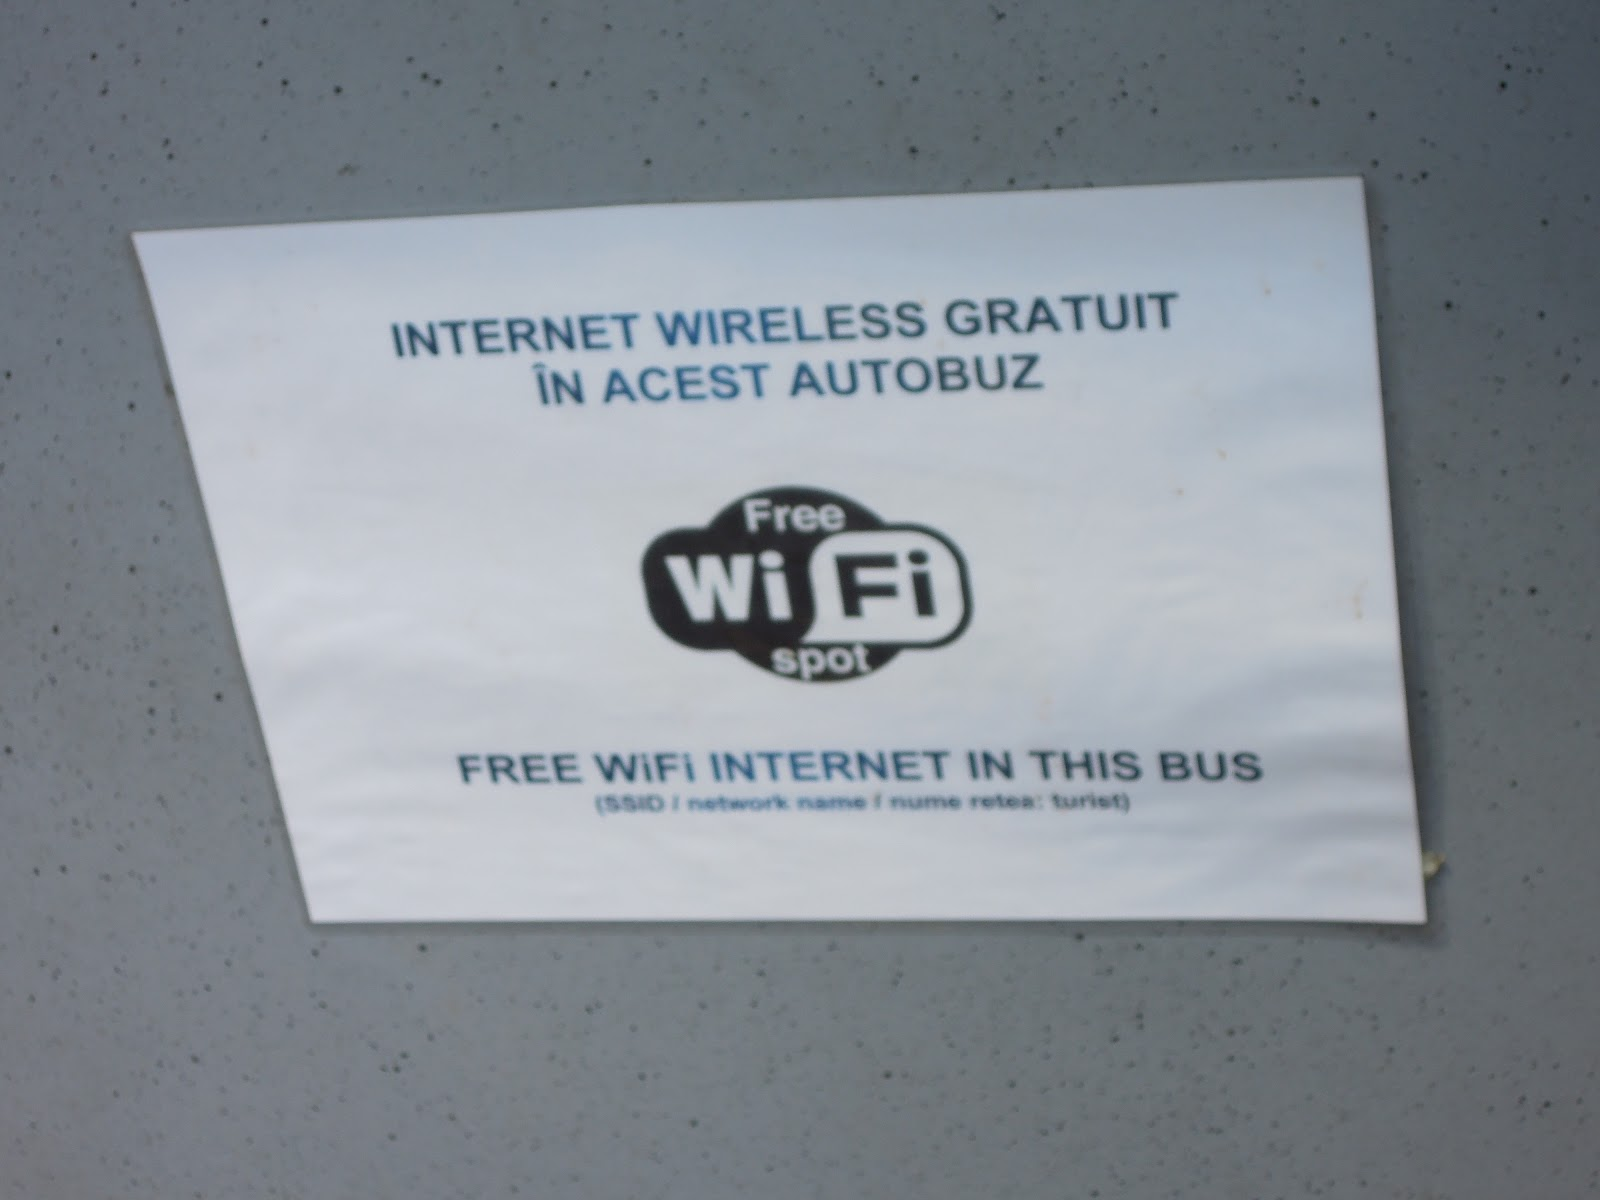 Anunt Internet wireless gratuit din autobuzul Bucharest City Tour